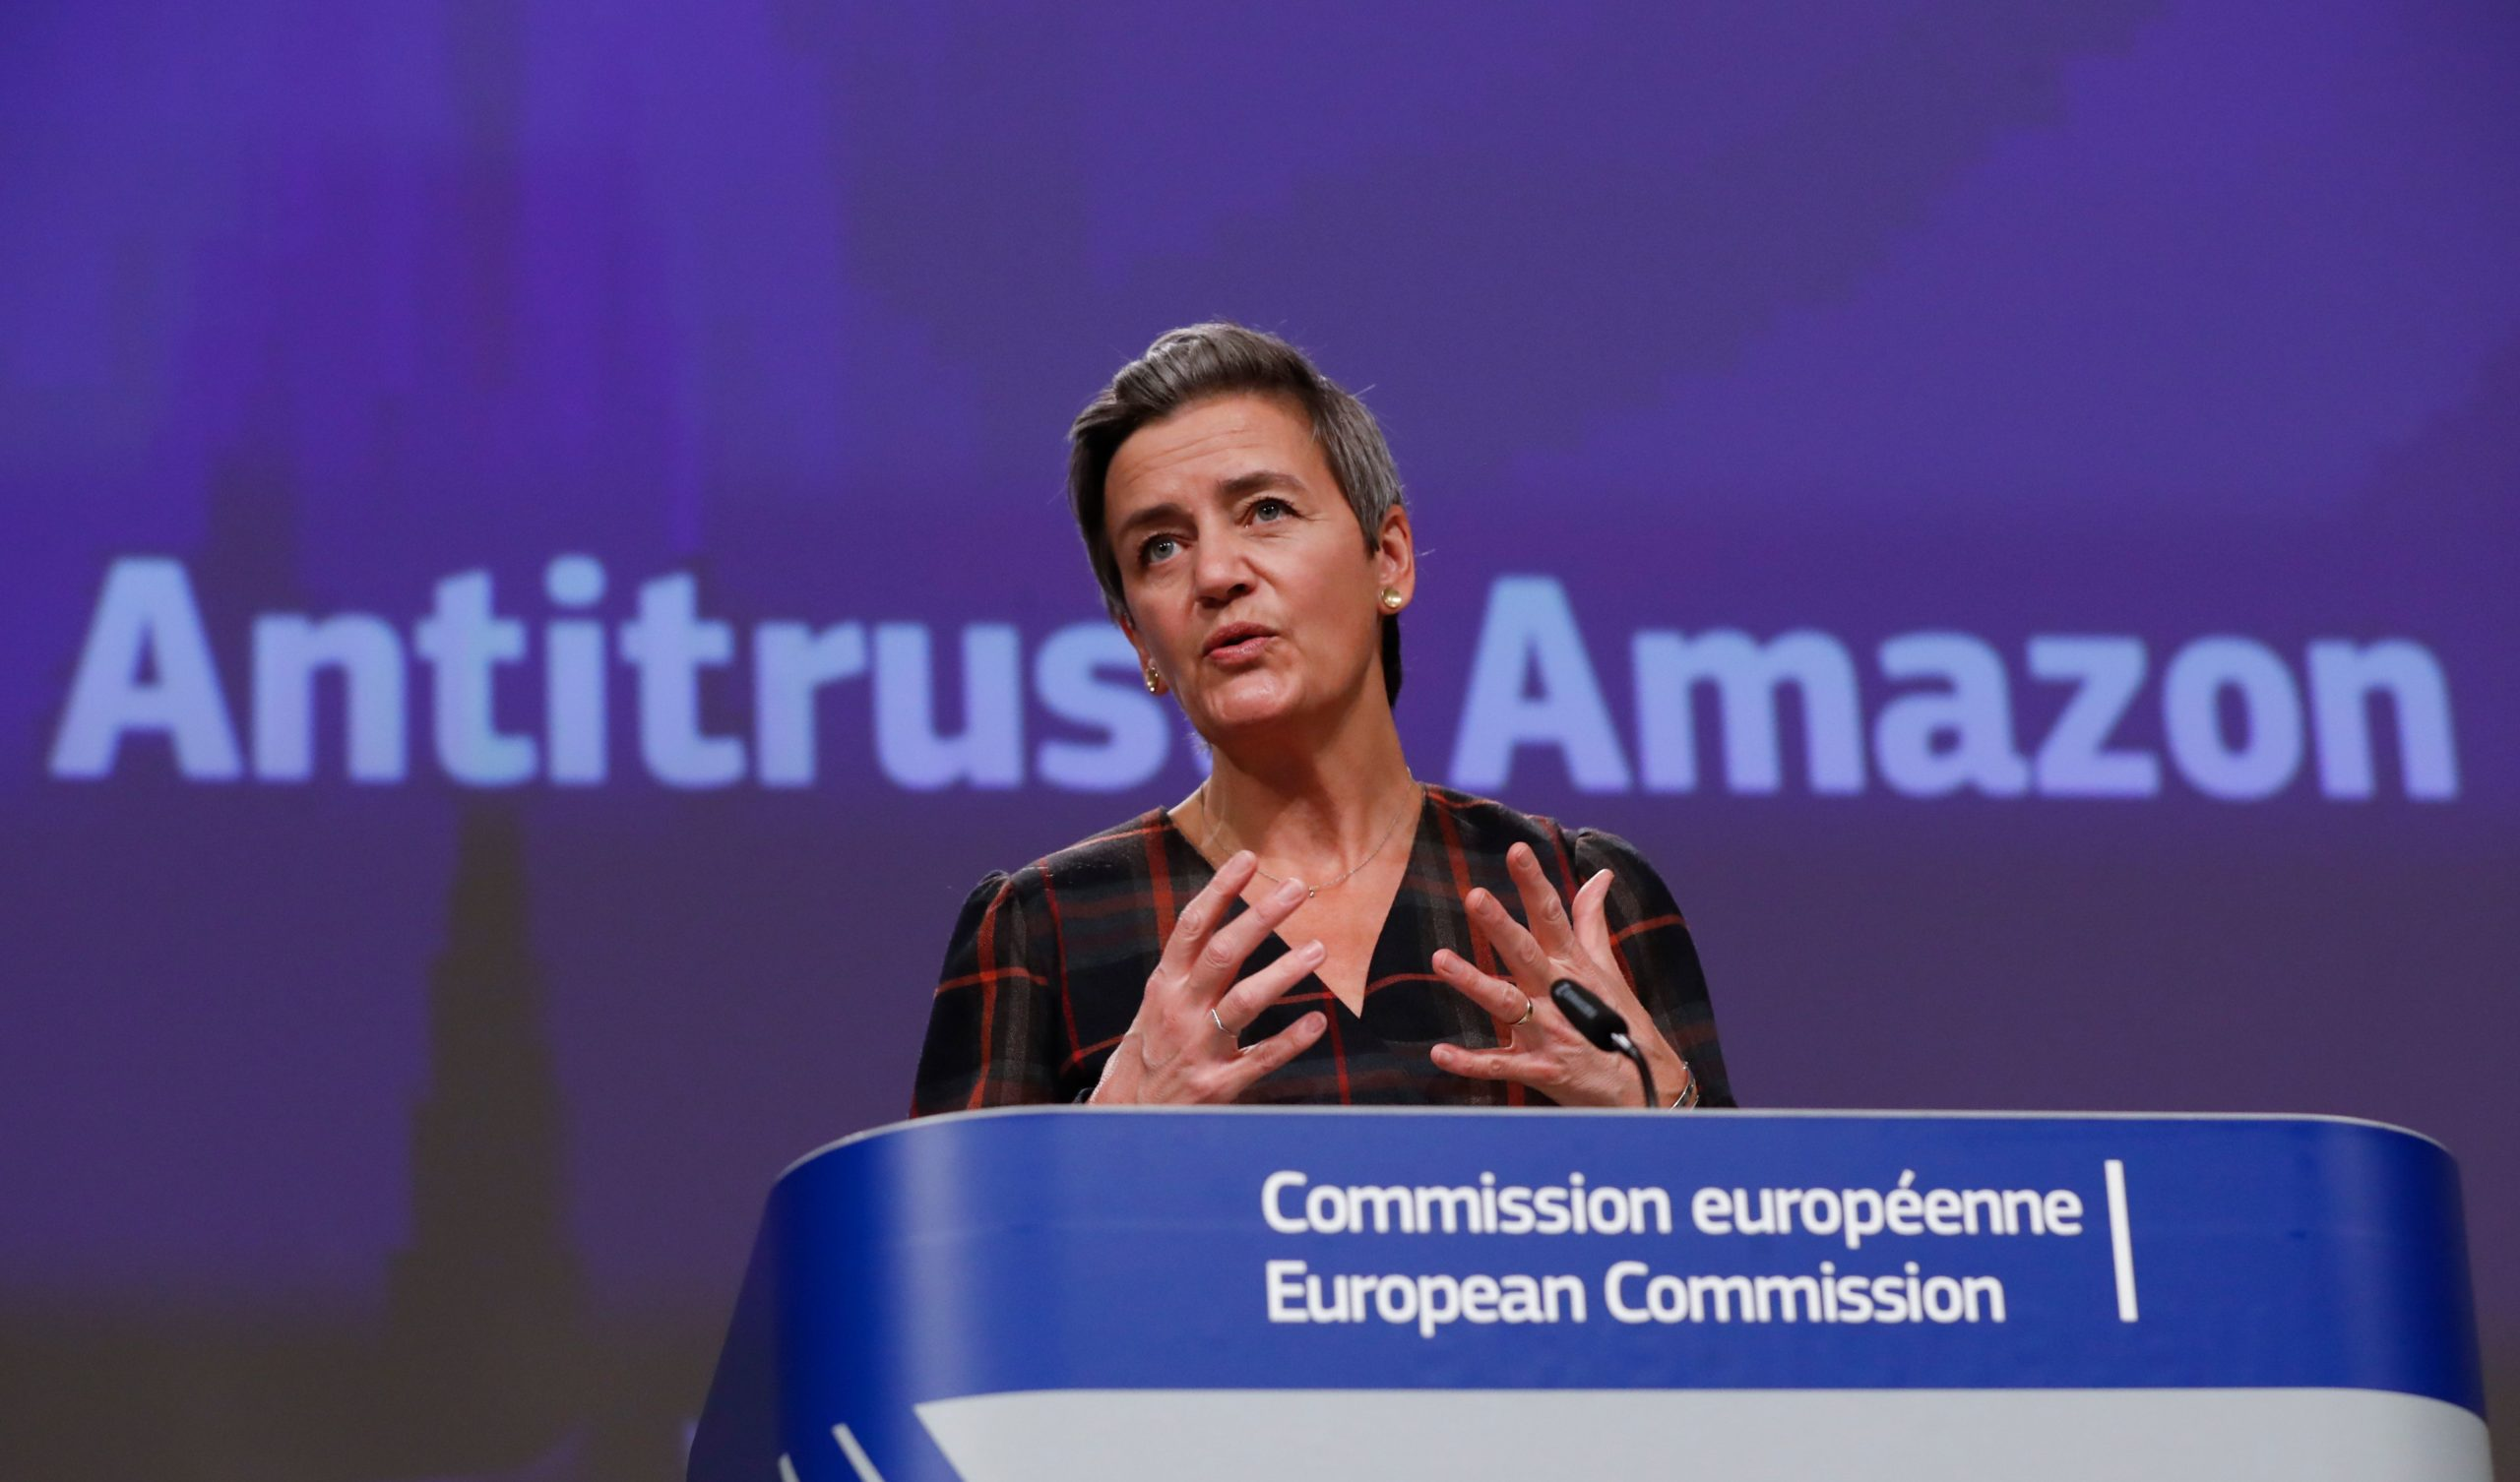 European Executive Vice-President Margrethe Vestager gives a press conference on an anti-trust case concerning Amazon on Tuesday. (Olivier Hoslet/Pool/AFP via Getty Images)